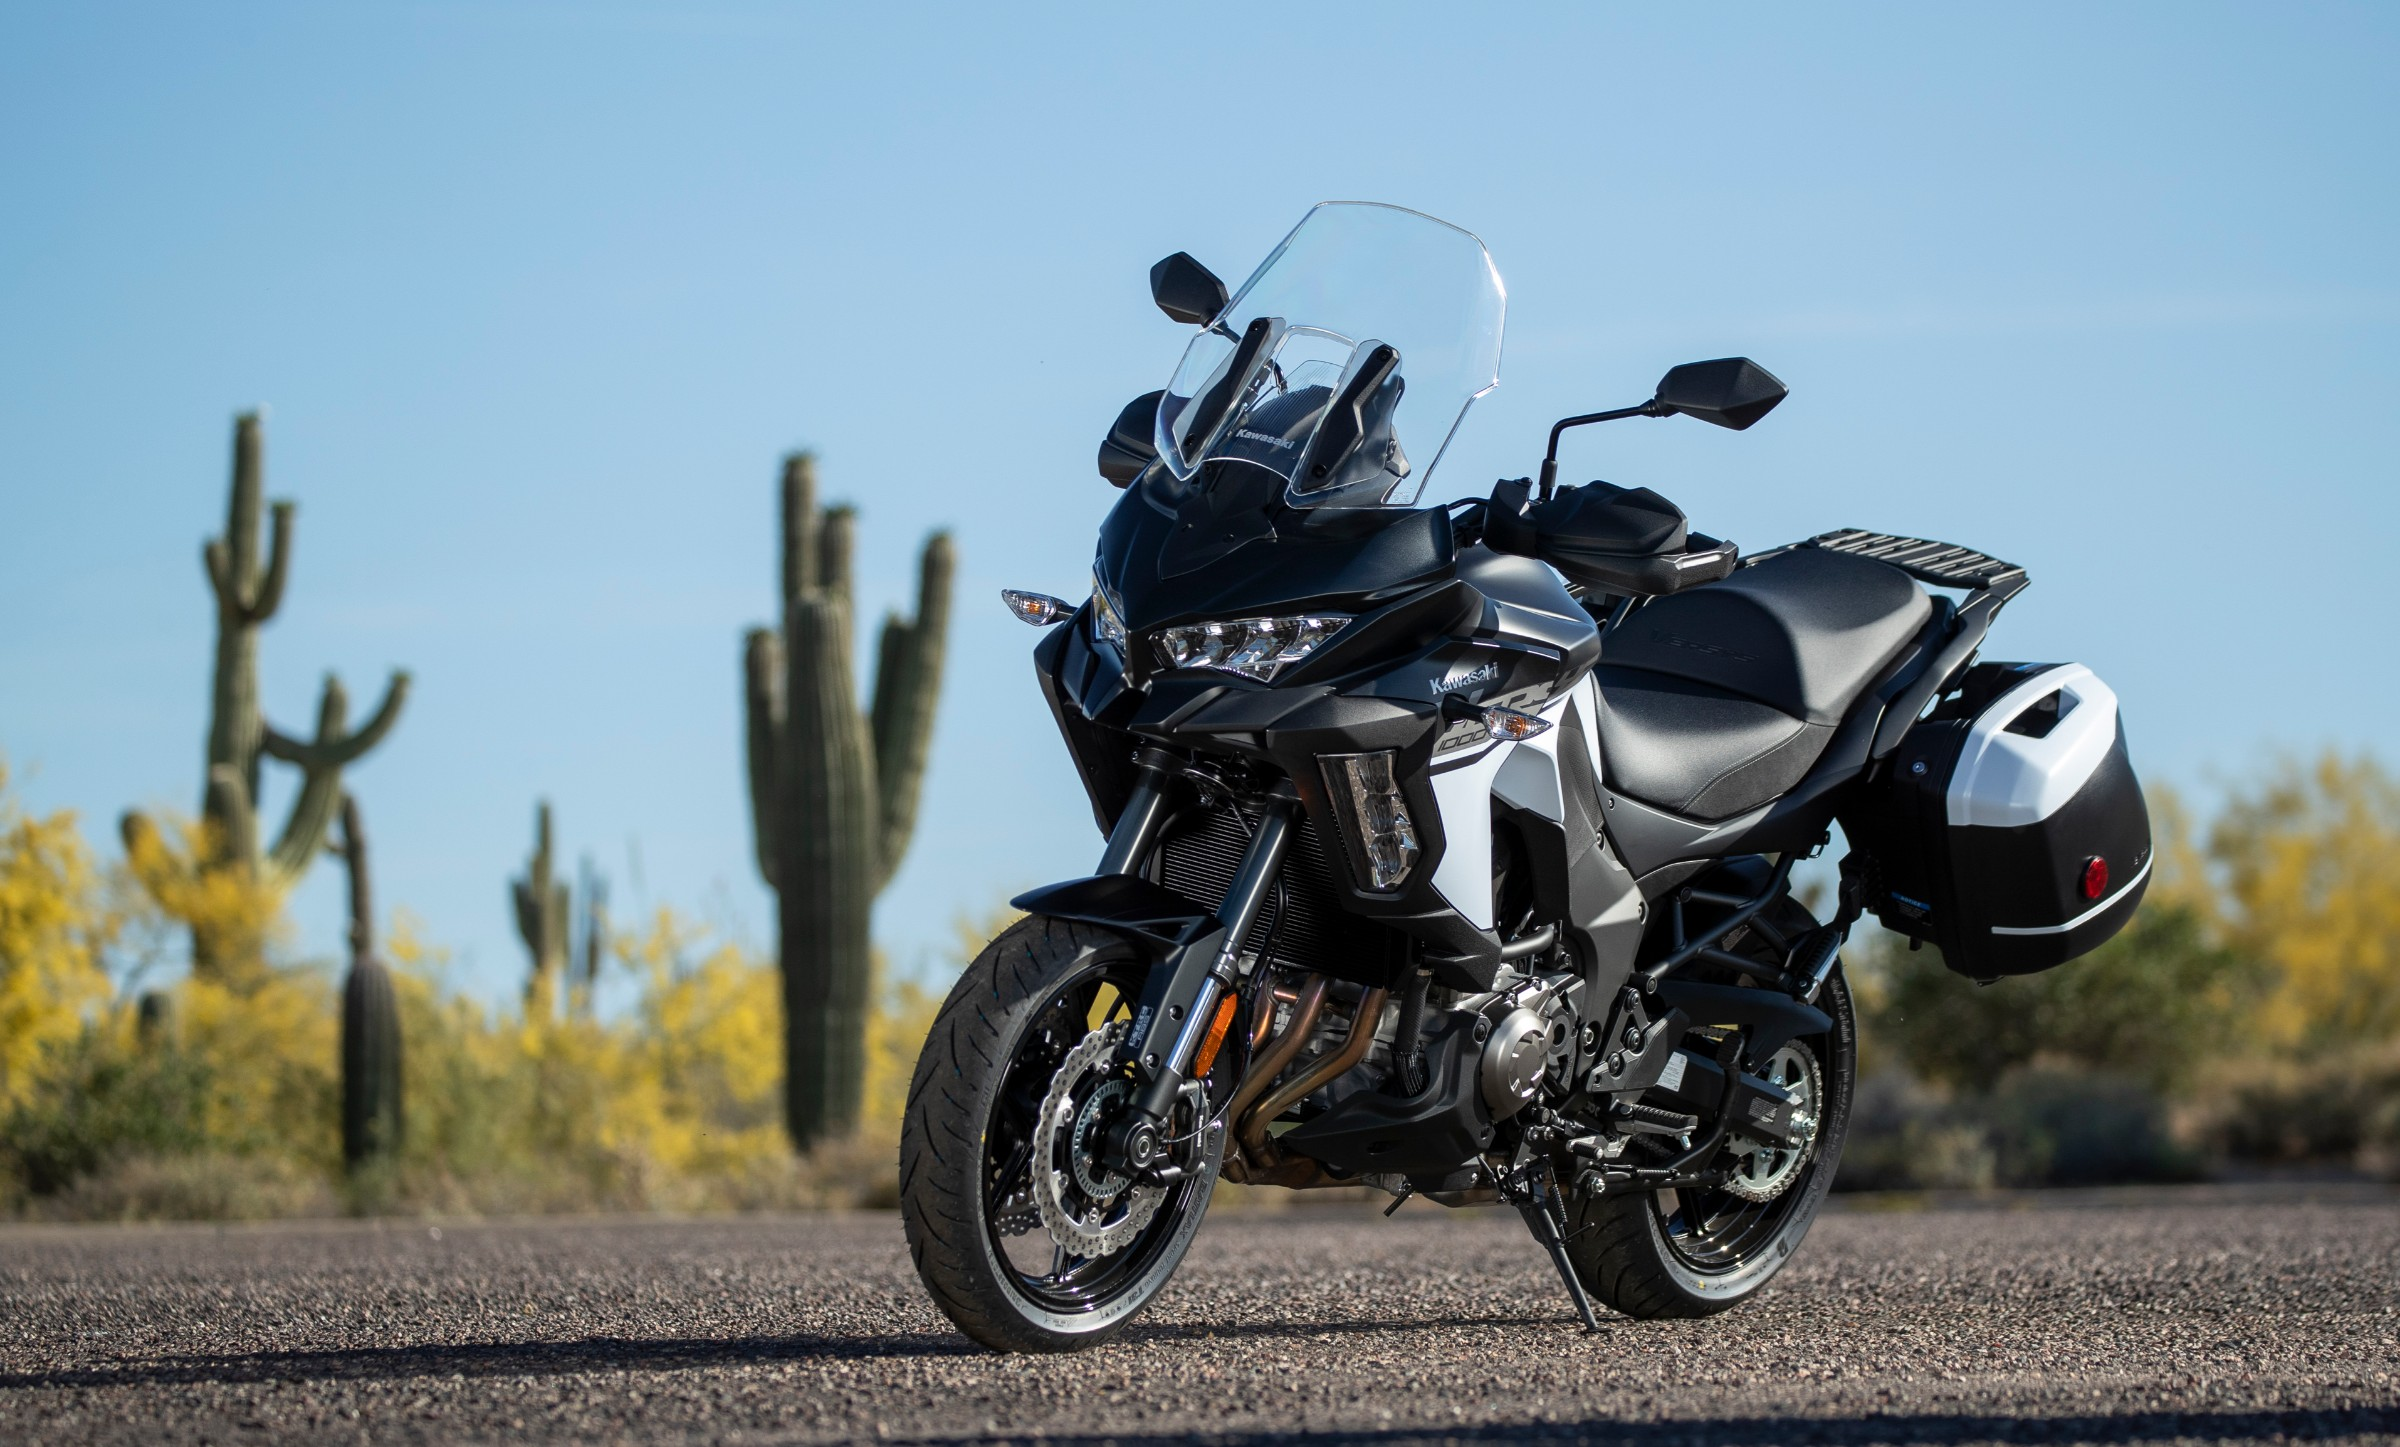 2019 Kawasaki Versys 1000 SE LT+ first ride review - RevZilla